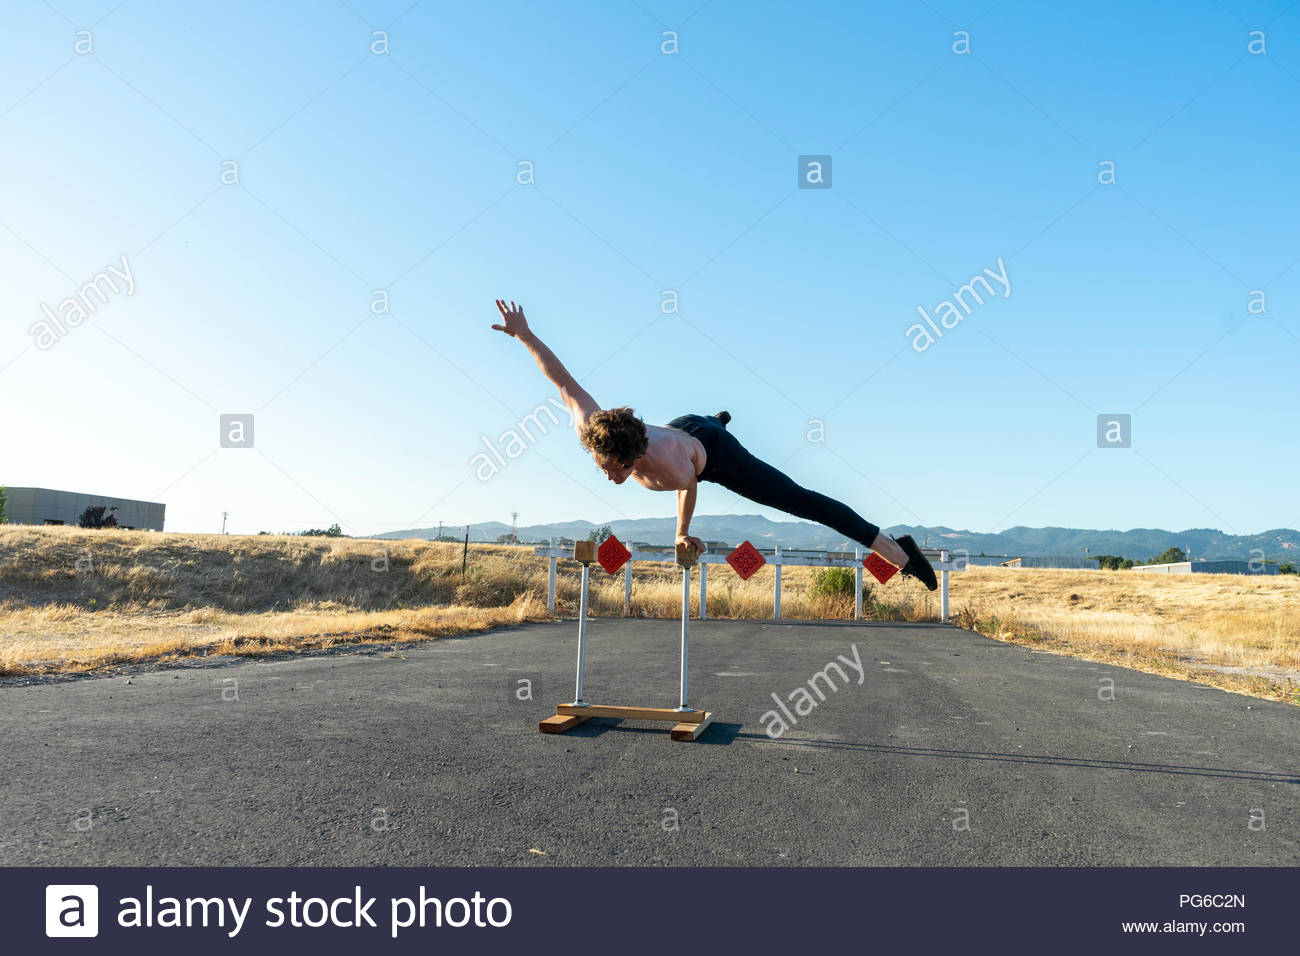 Acrobat balancing on handstand canes - Stock Image